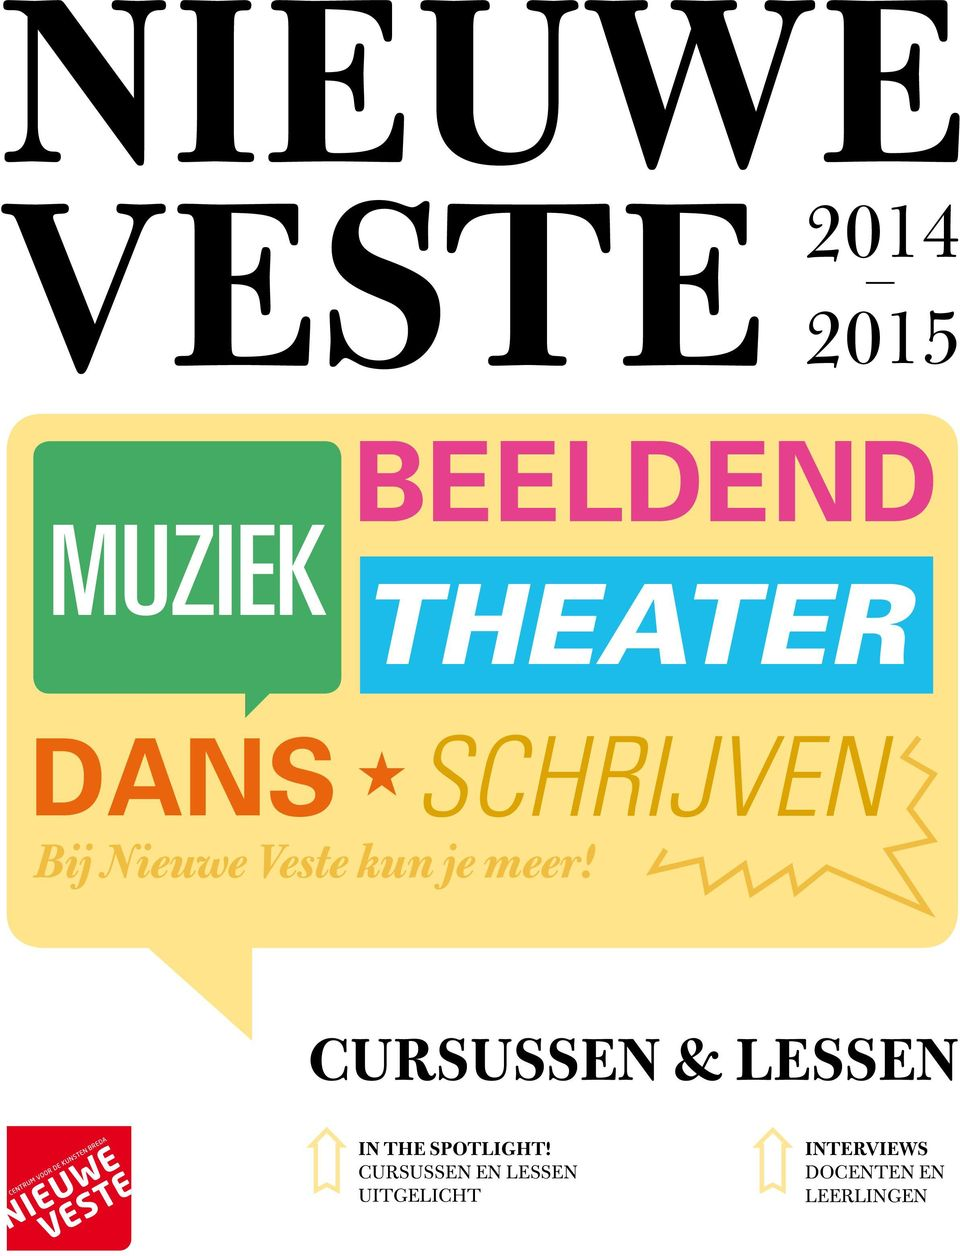 Cursussen & lessen In The spotlight!